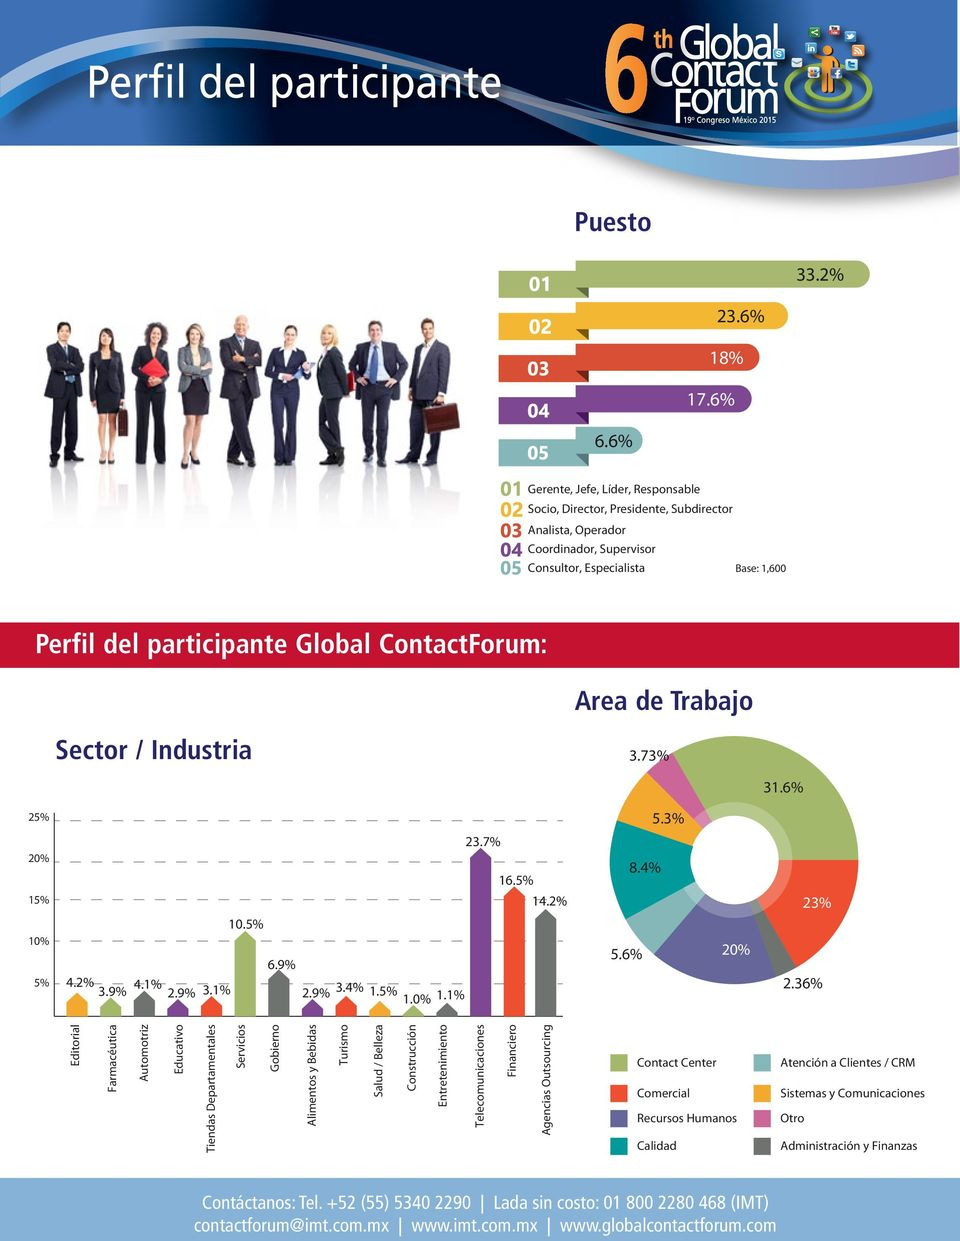 ContactForum: Area de Trabajo Sector / Industria 3.73% 31.6% 25% 5.3% 20% 23.7% 16.5% 8.4% 15% 14.2% 23% 10.5% 10% 5% 4.2% 3.9% 4.1% 2.9% 3.1% 6.9% 2.9% 3.4% 1.5% 1.0% 1.1% 5.6% 20% 2.